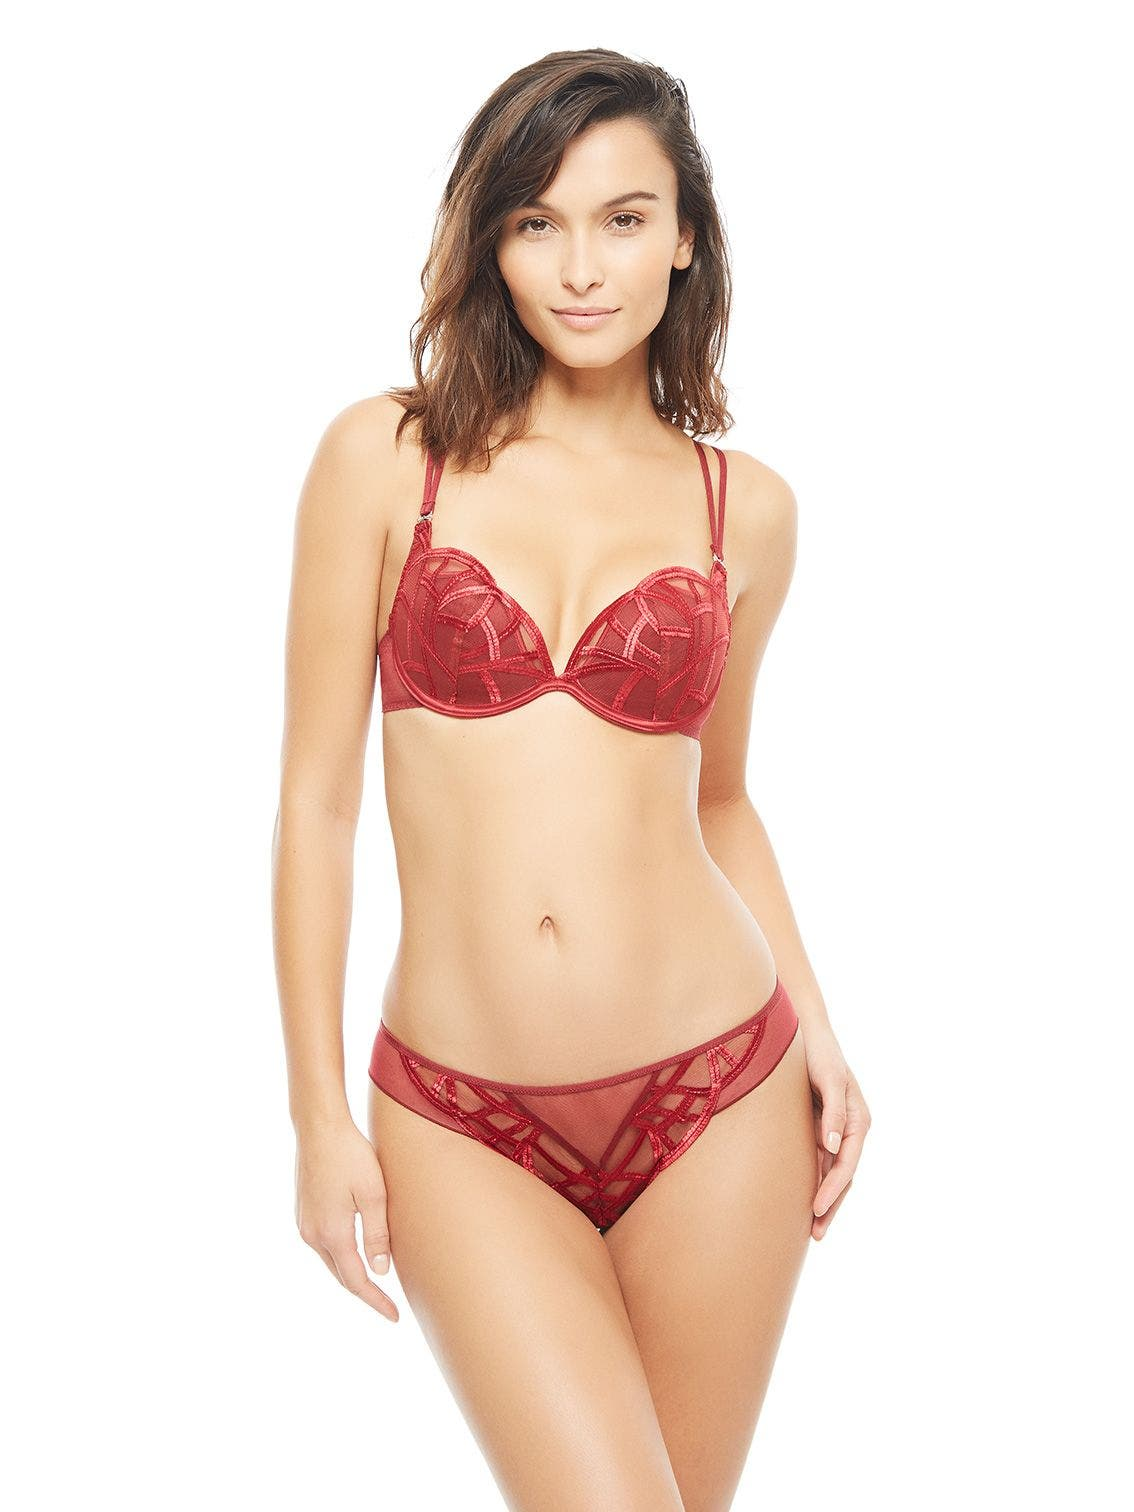 Plunging push-up bra - Wine